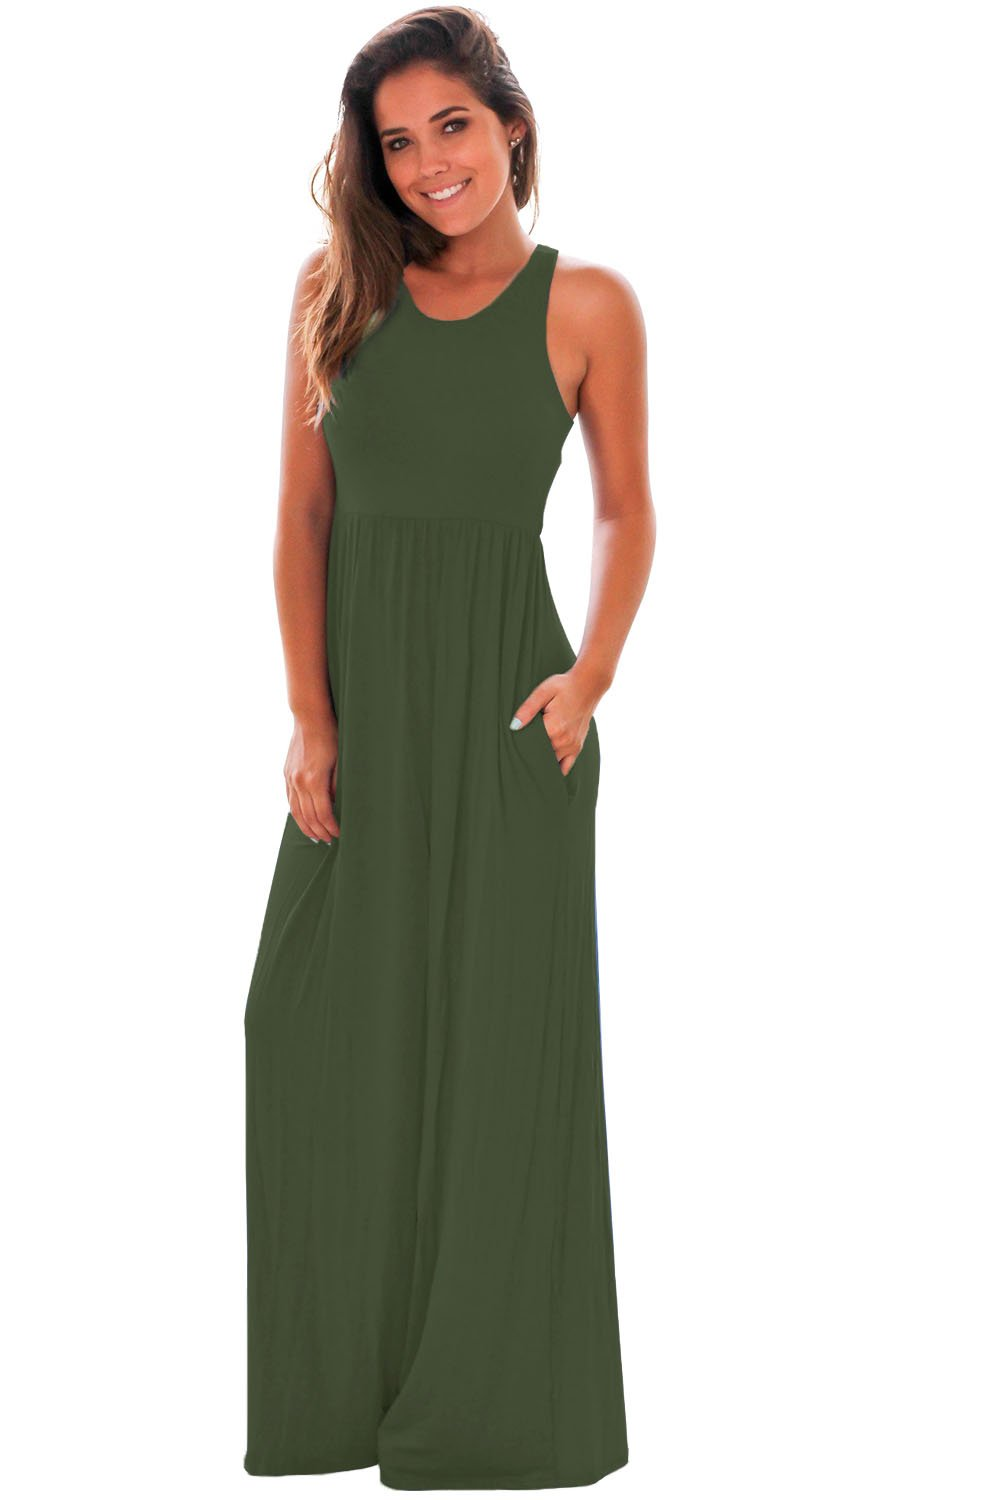 Chicloth Green Racerback Maxi Dress With Pockets Maxi Dress Maxi Dress Blue Pocket Maxi Dress [ 1500 x 1001 Pixel ]